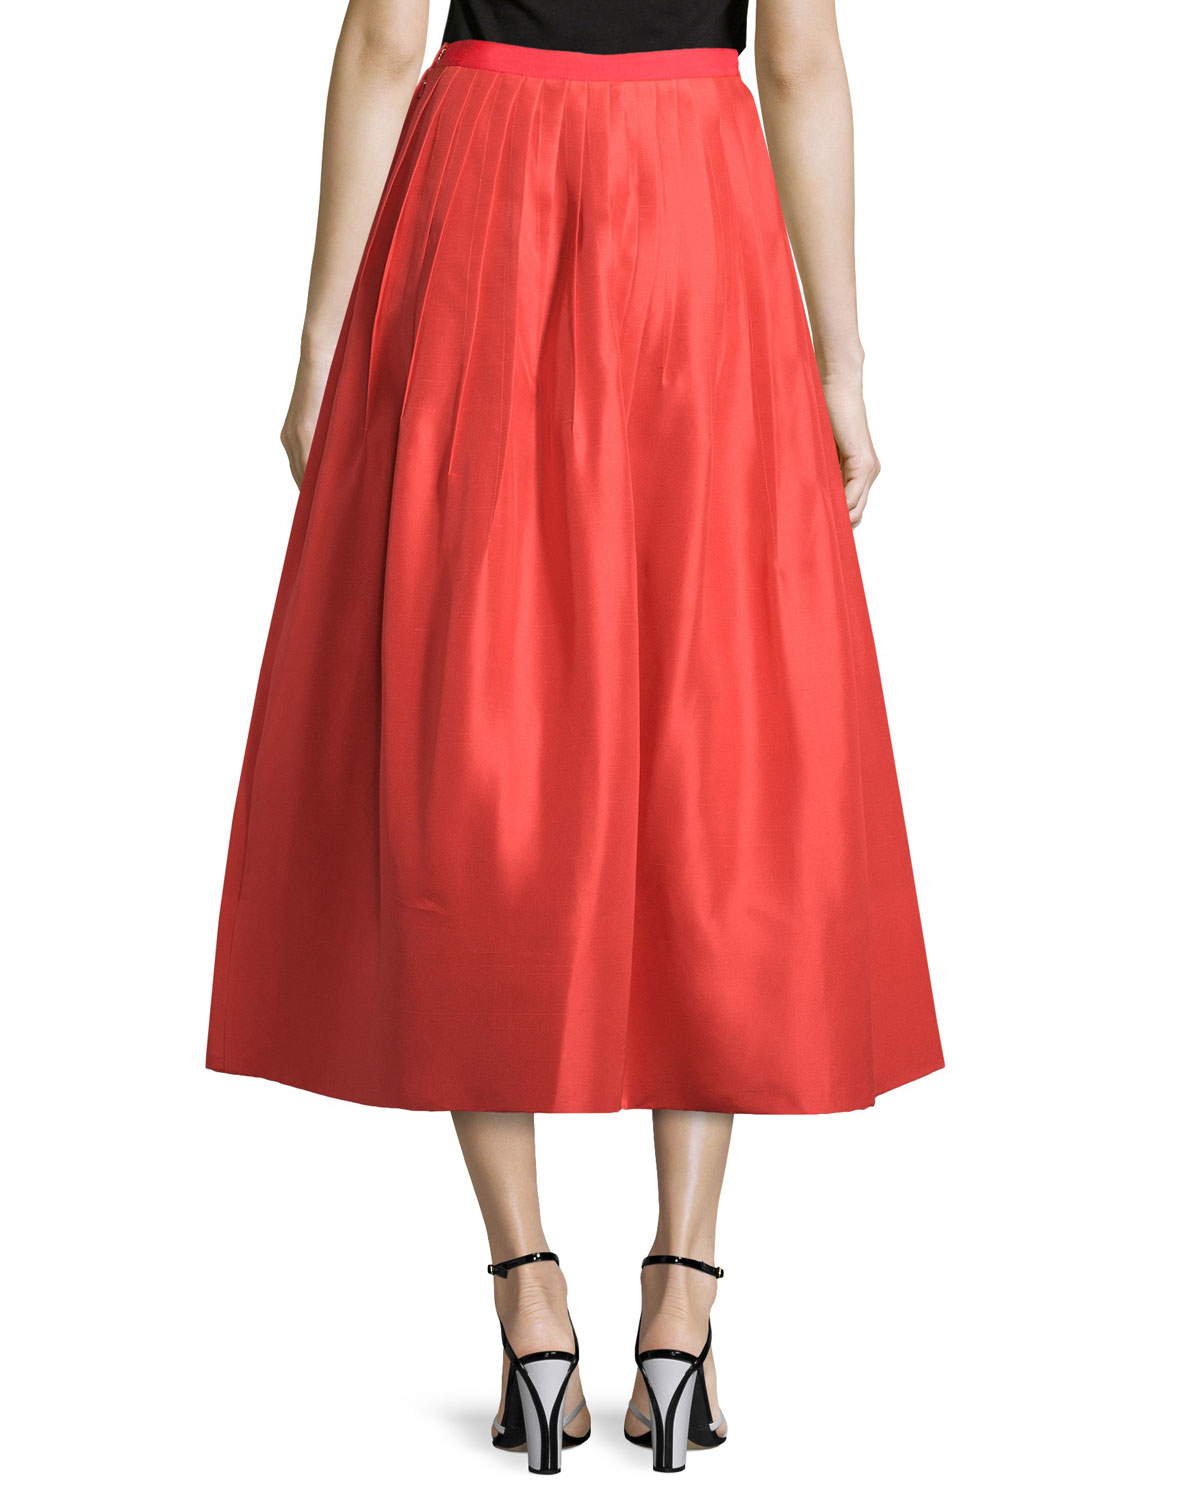 Oscar de la renta Pleated Silk Faille A-line Skirt in Red | Lyst